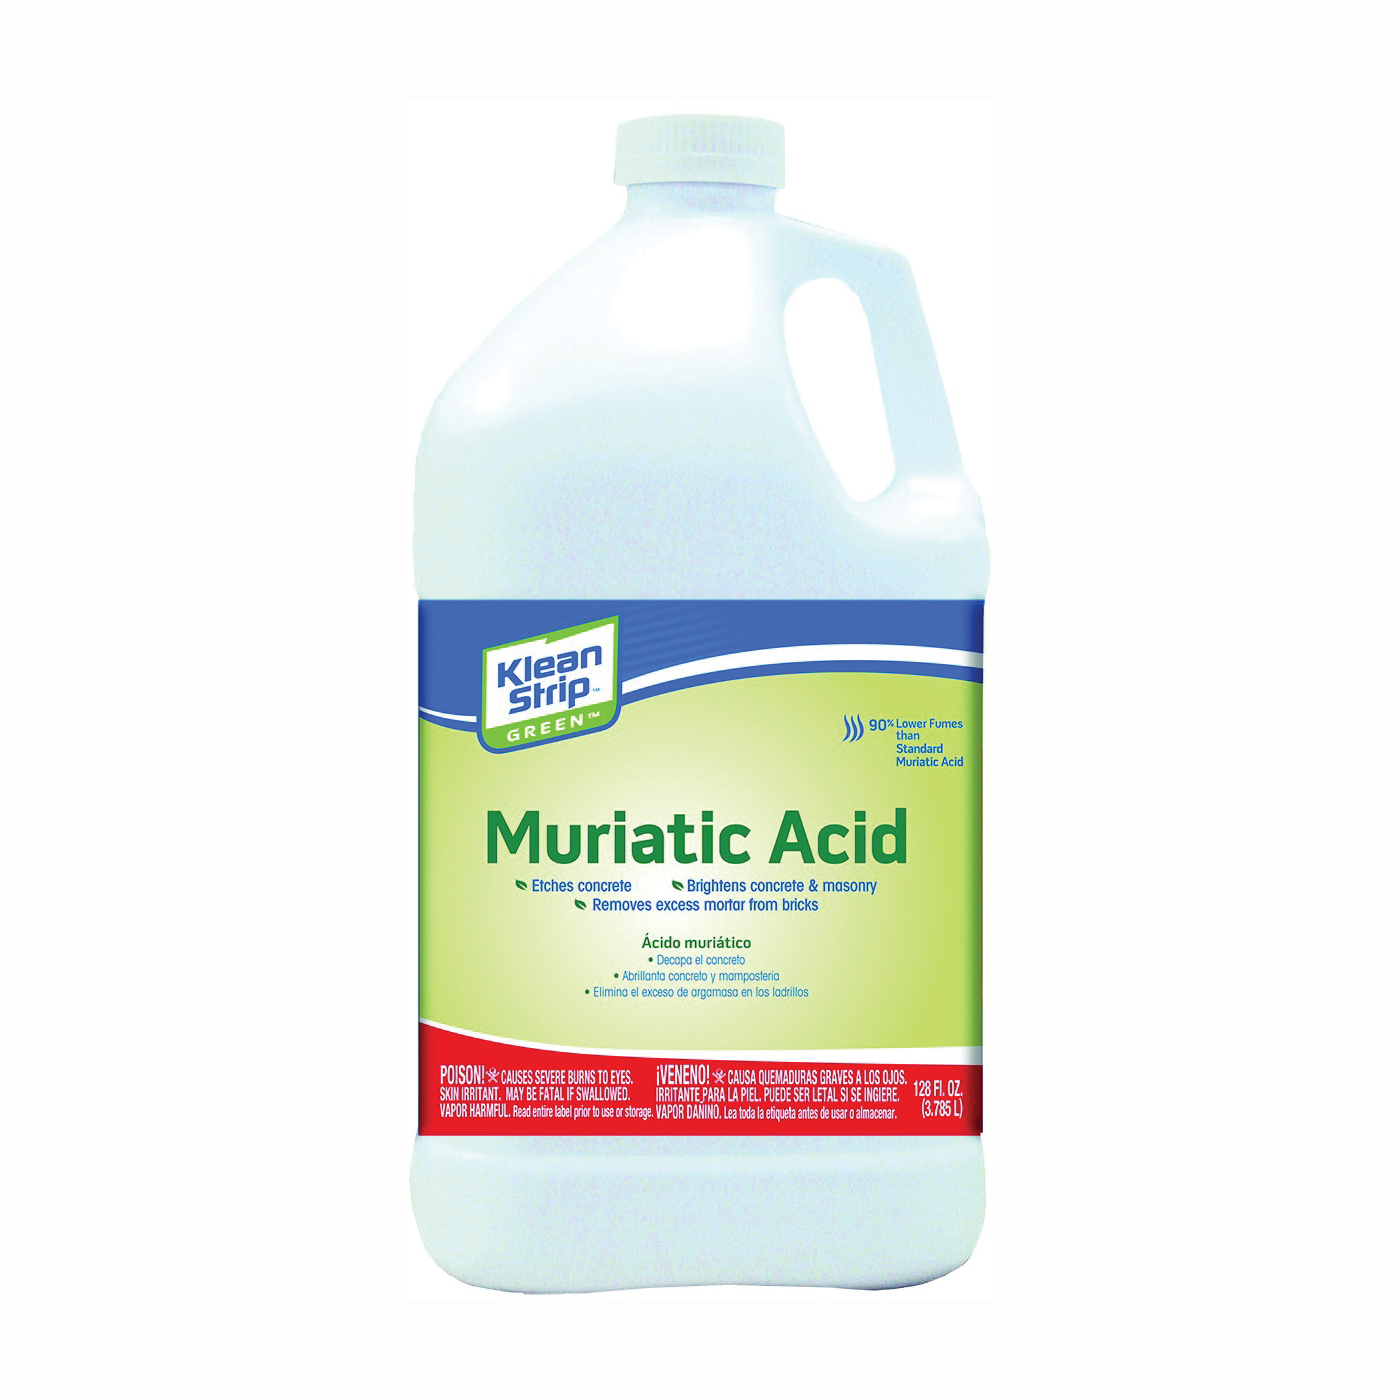 Picture of Klean Strip GKGM75006 Safer Muriatic Acid, Liquid, Slight Pungent, Pungent, 1 gal, Can